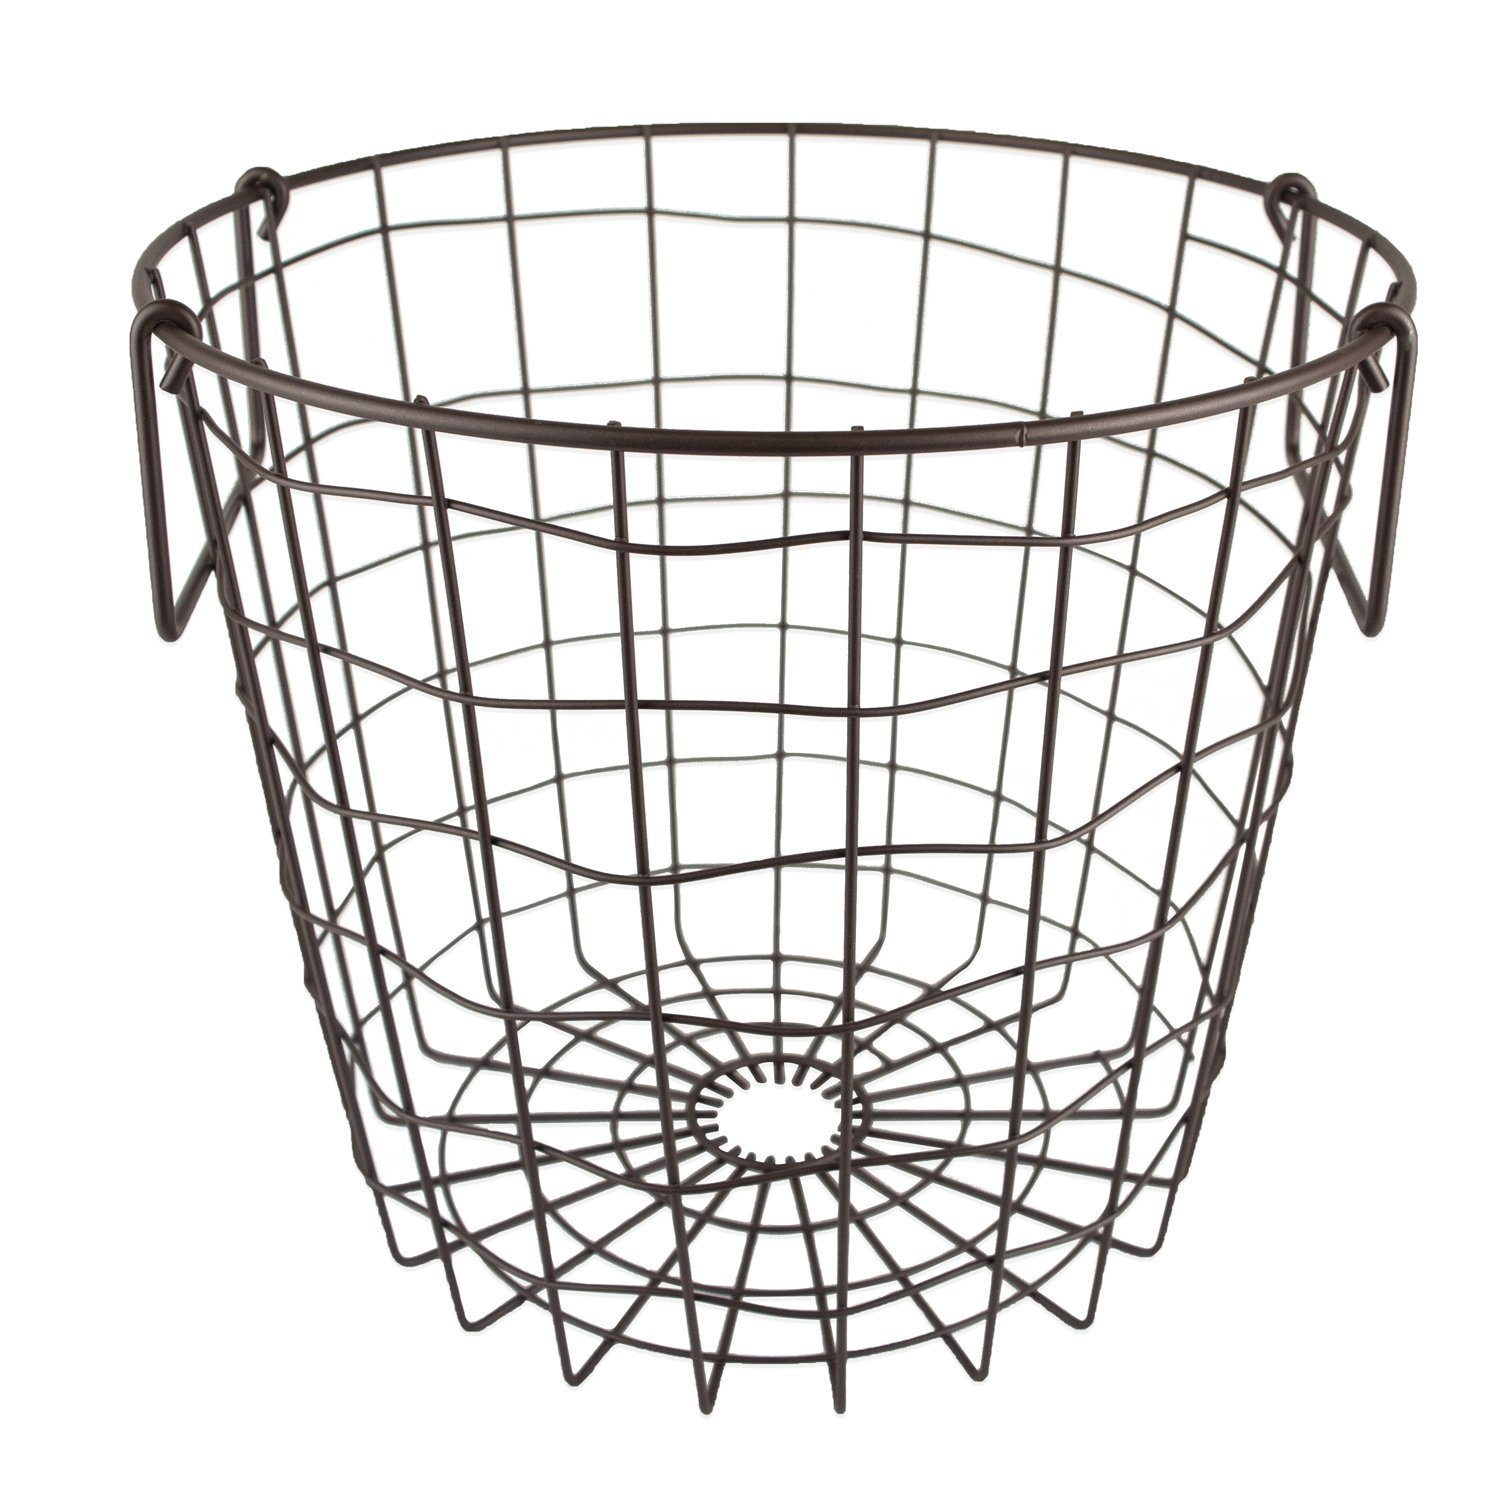 Farmhouse Home Decor | Wire Baskets